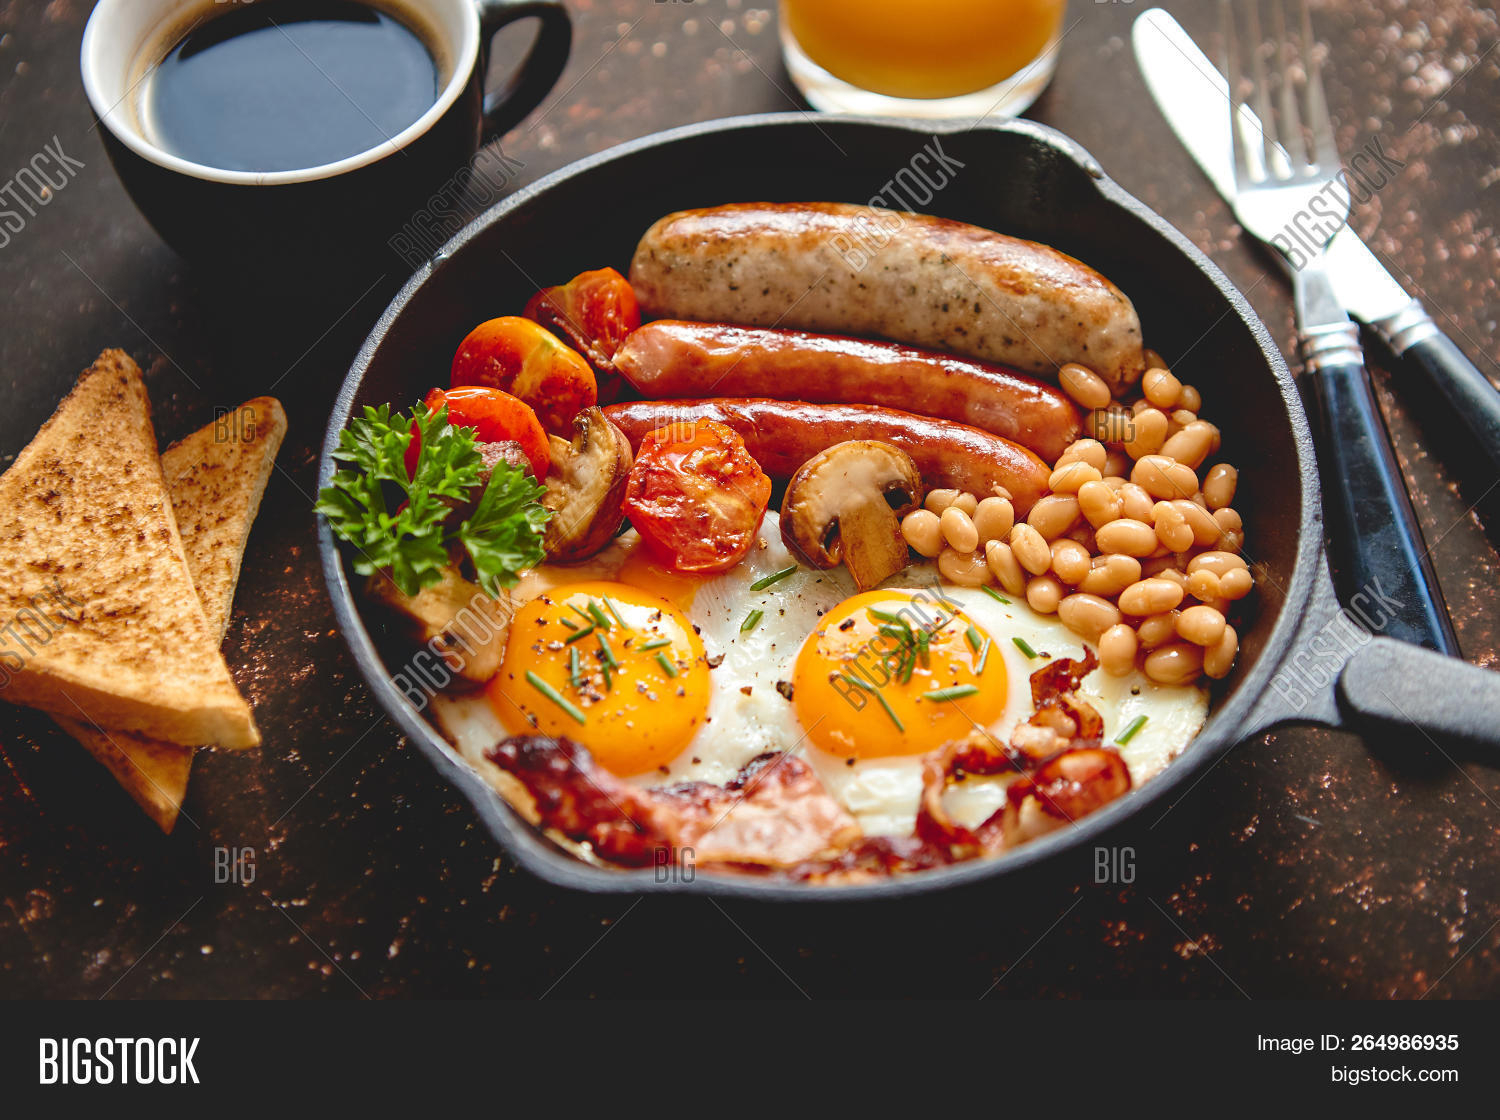 background,bacon,baked,bean,bread,breakfast,butter,cholesterol,closeup,coffee,cooked,cooking,cuisine,delicious,dinner,dish,egg,eggs,english,fat,flat lay,food,fork,fresh,freshness,fried,fried egg,frying pan,full,healthy,knife,meal,meat,morning,mushroom,orange,pan,plate,roasted,sausage,serving size,stone,table,toast,tomato,top,traditional,view,wooden,yolk